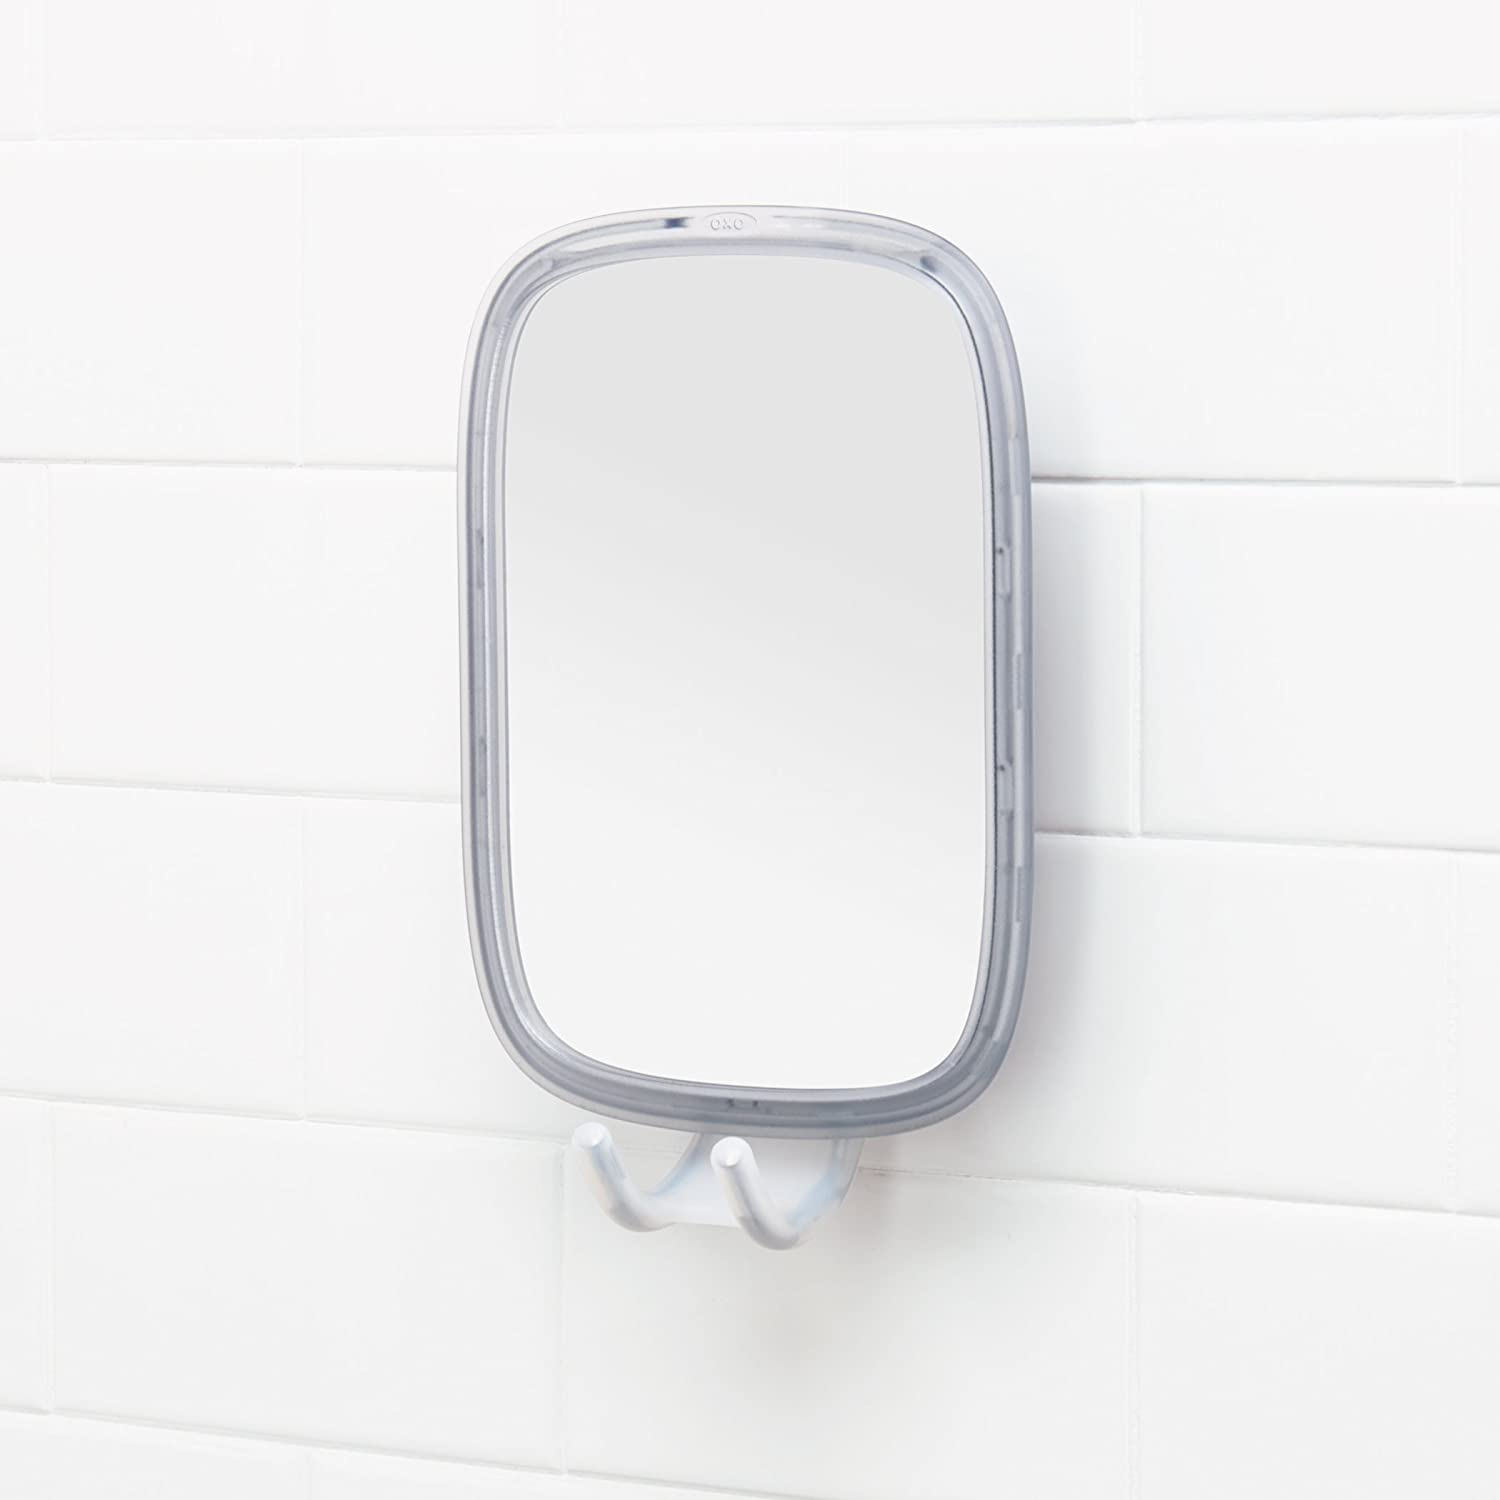 OXO Good Grips Stronghold Suction Fogless Mirror 13206400